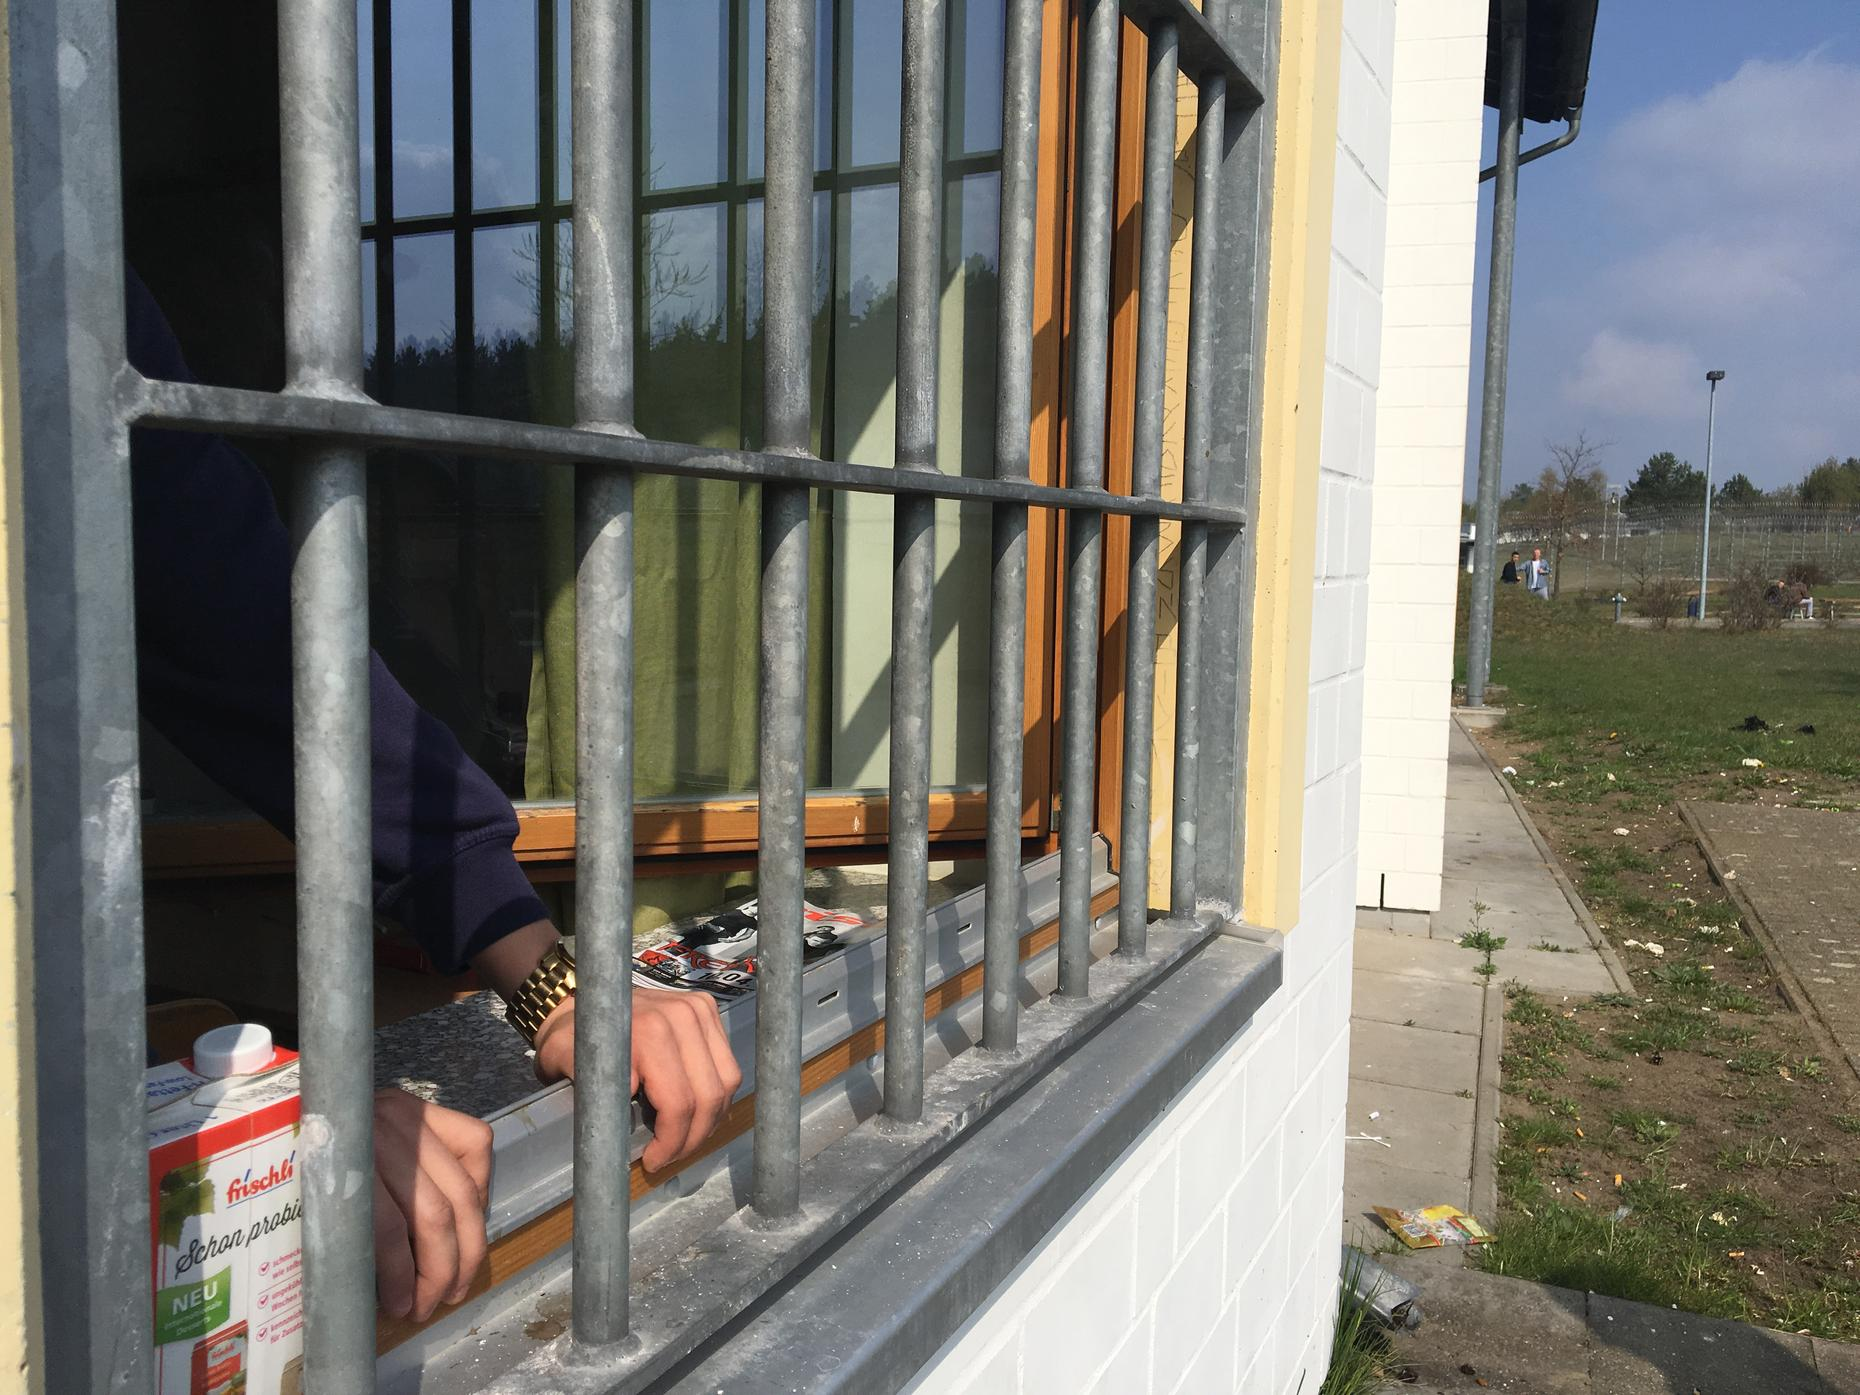 Kids in Prison: Germany Has a Different Approach, Better